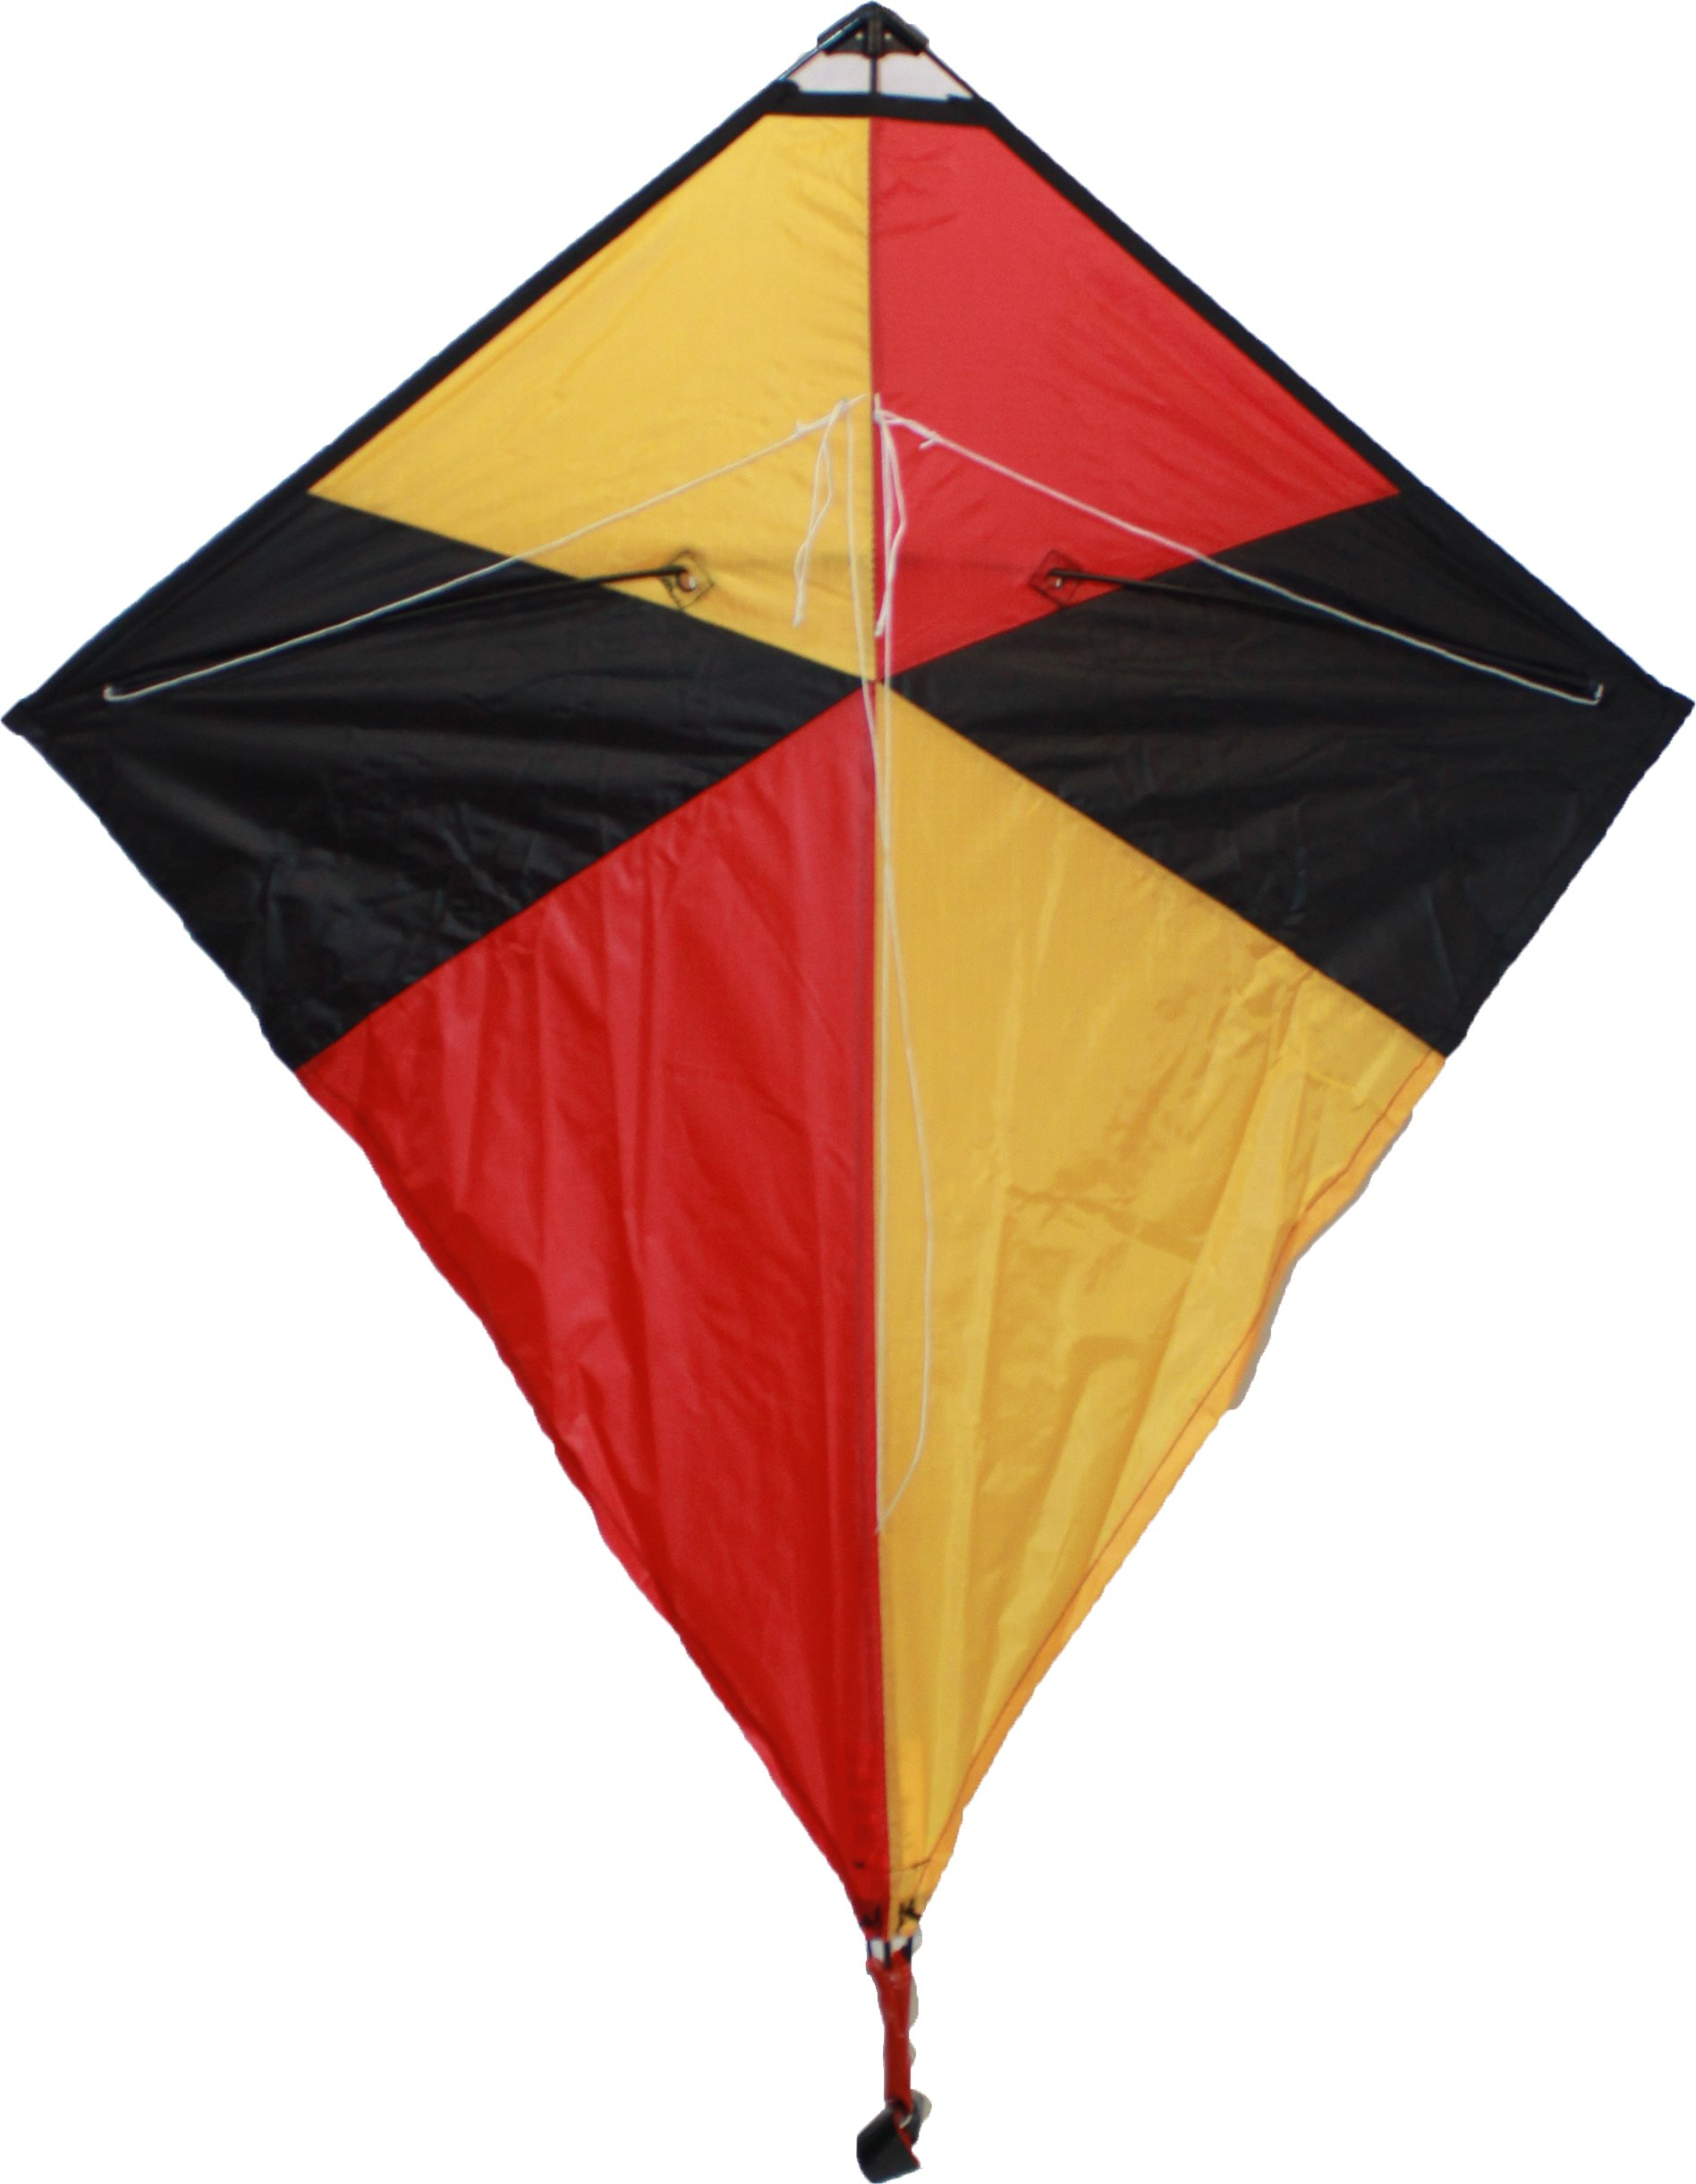 Toys & Hobbies Learned New Arrival Outdoor Sky Dancer Toy Kite 600d Polyester Fiberglass Triangle Flying Kite With Long Tail For Teenager Hot Sale Kites & Accessories